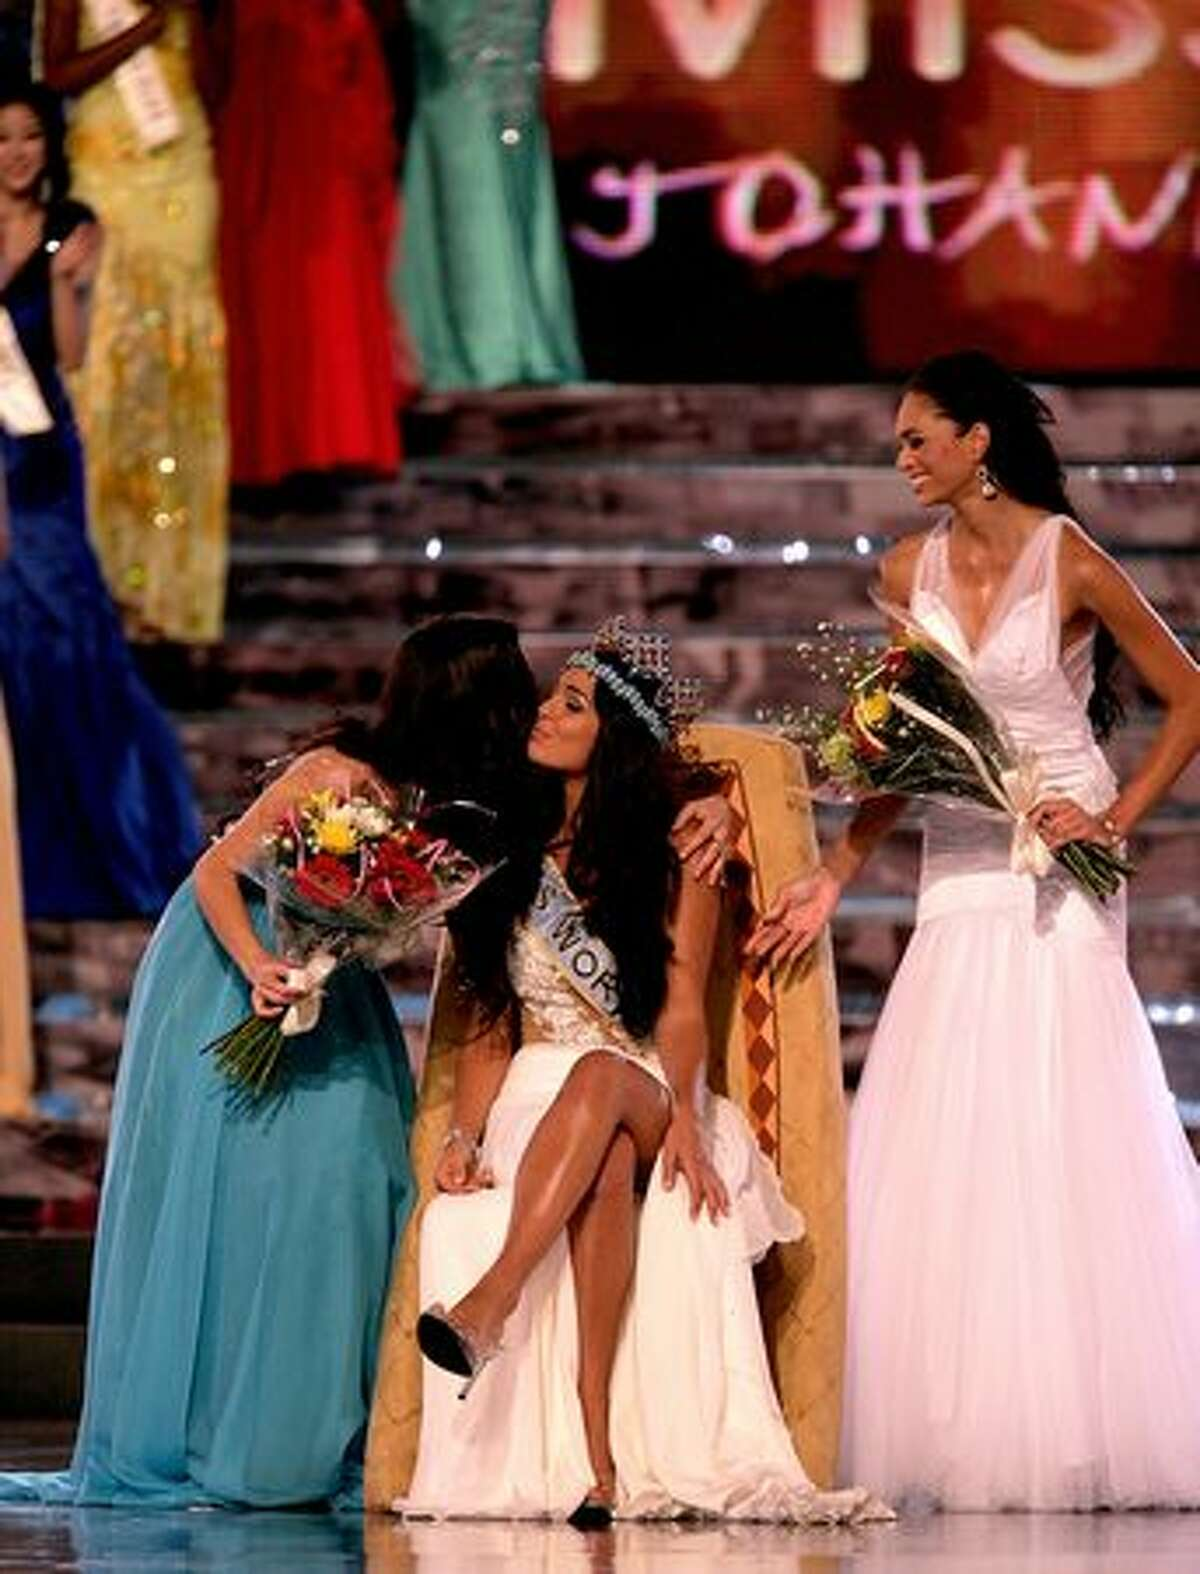 Miss Gibraltar is crowned Miss World 2009 with runner up Miss Mexico Perla Beltran Acosta (L) and 3rd place finisher Miss South Africa Tatum Keshwar (R) at Gallagher Convention Center in Johannesburg, South Africa.